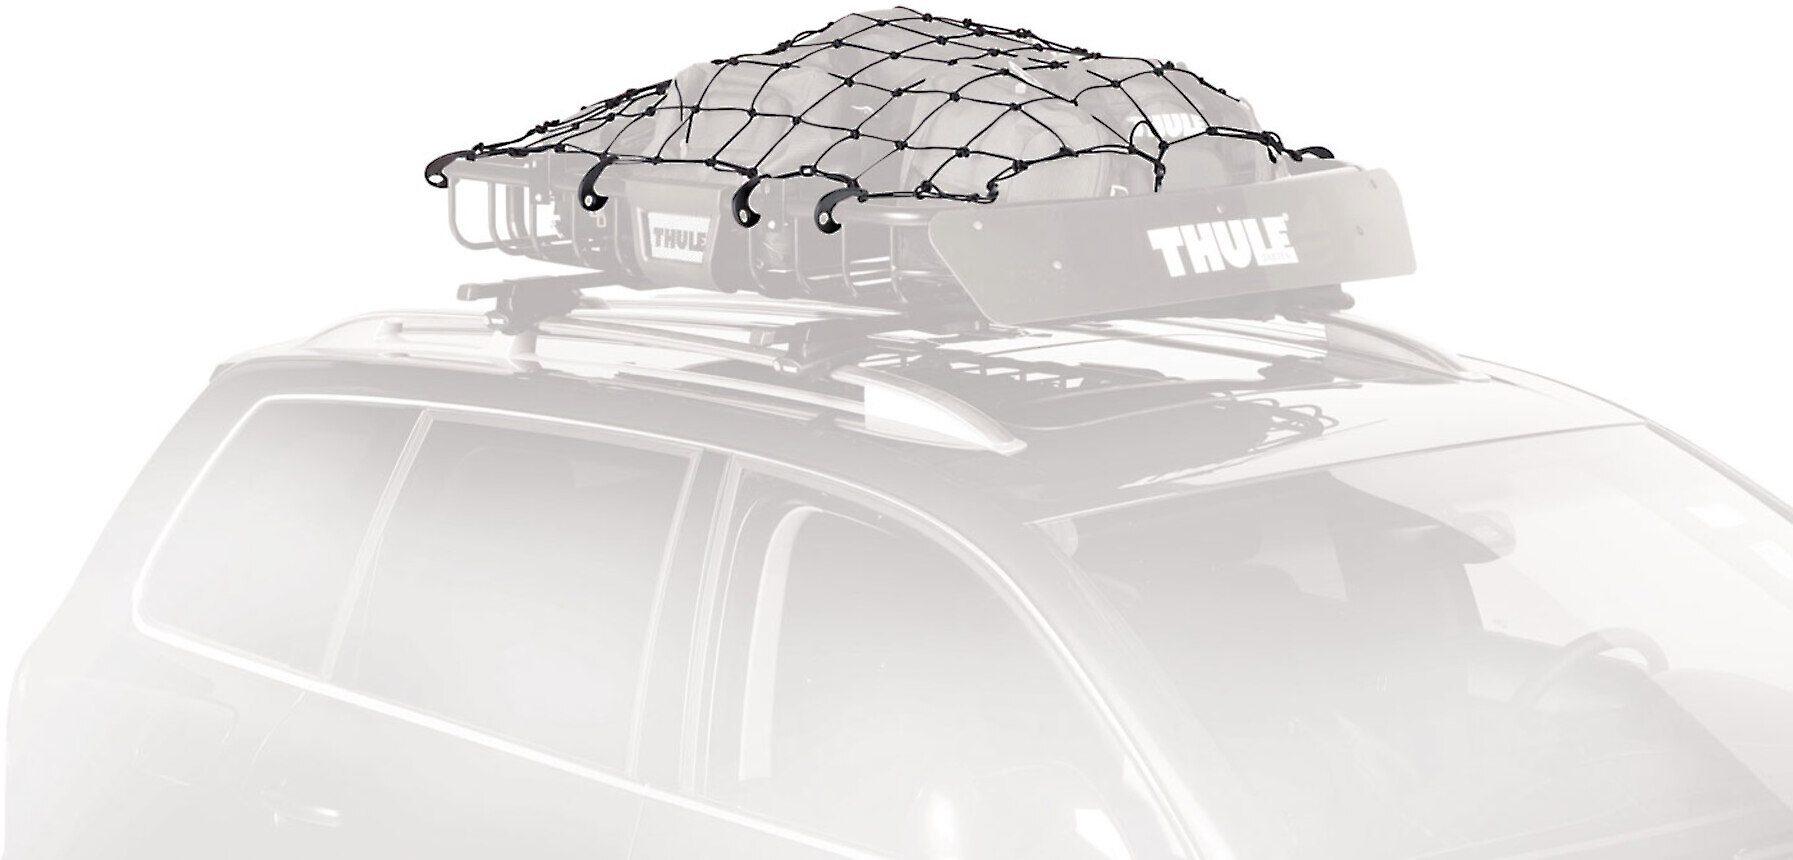 Thule Cargo Carriers At Crutchfield